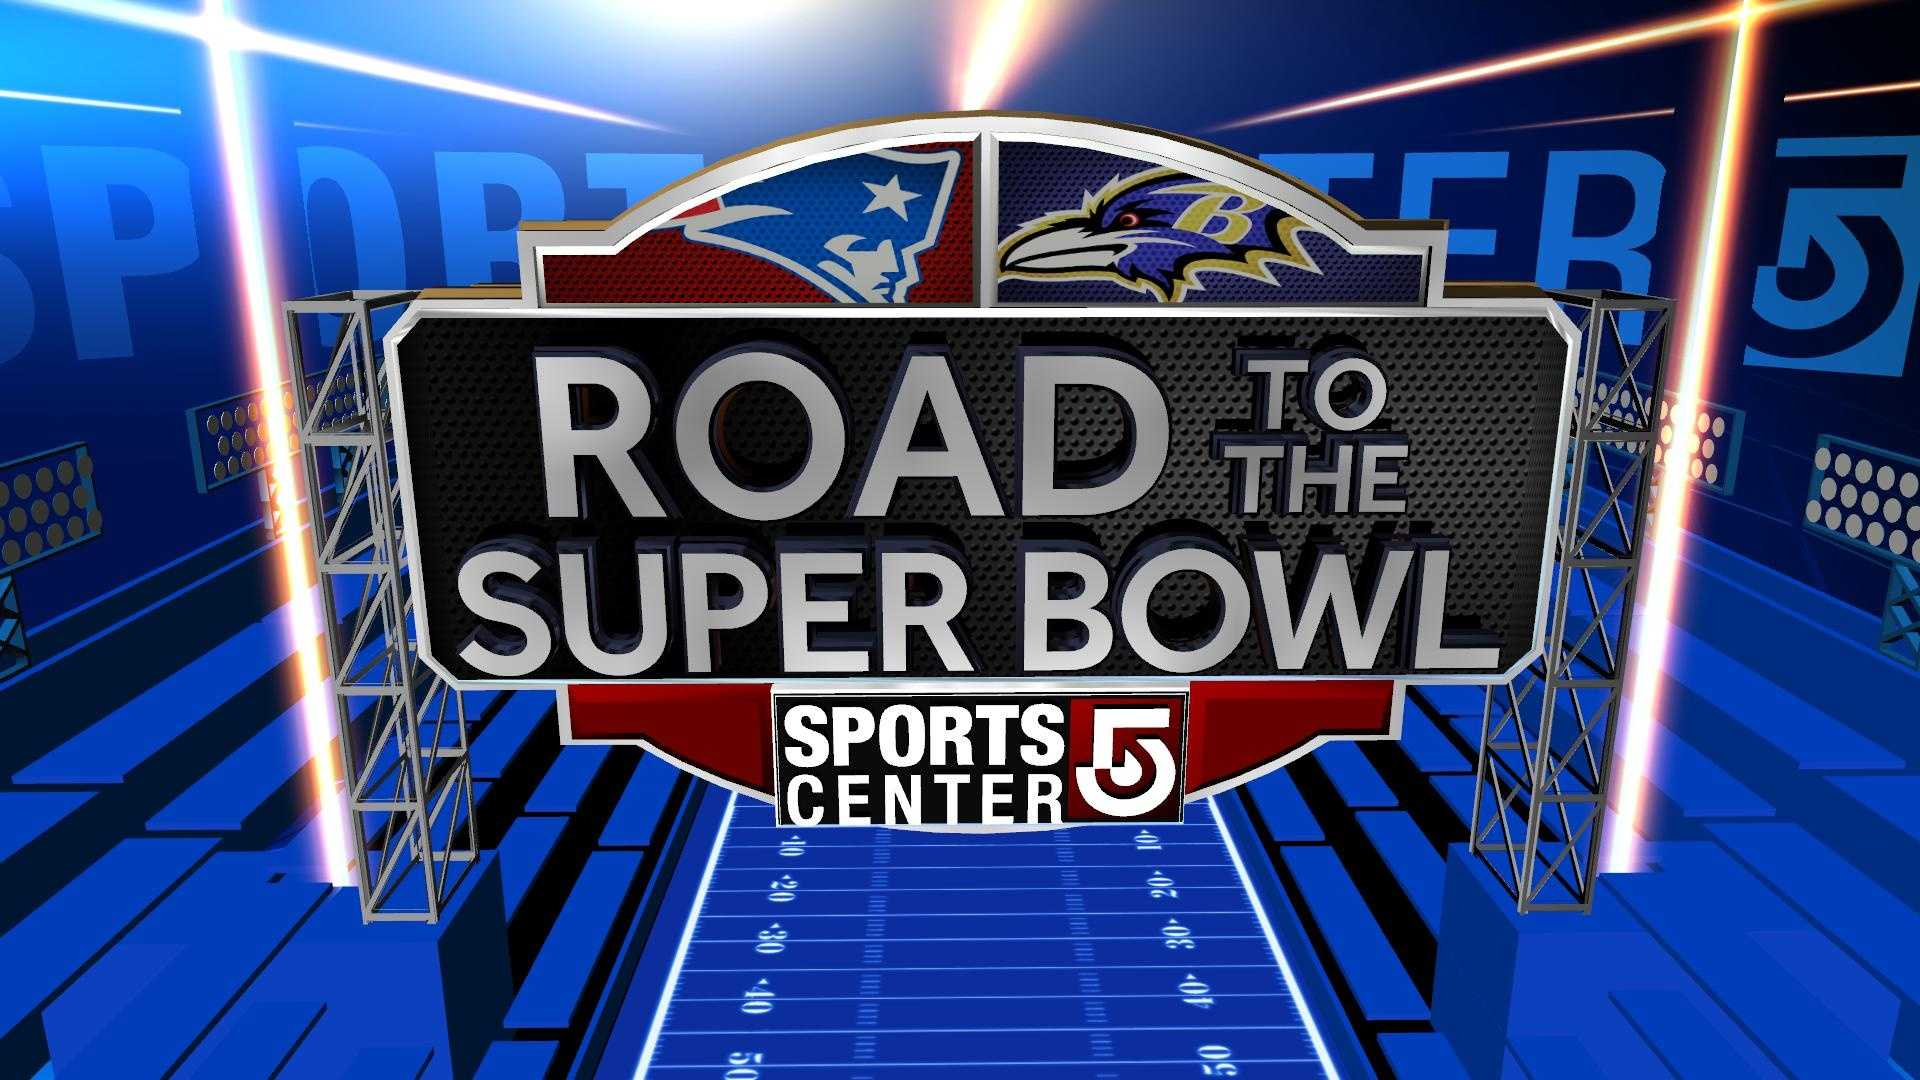 Road To Super Bowl Graphic